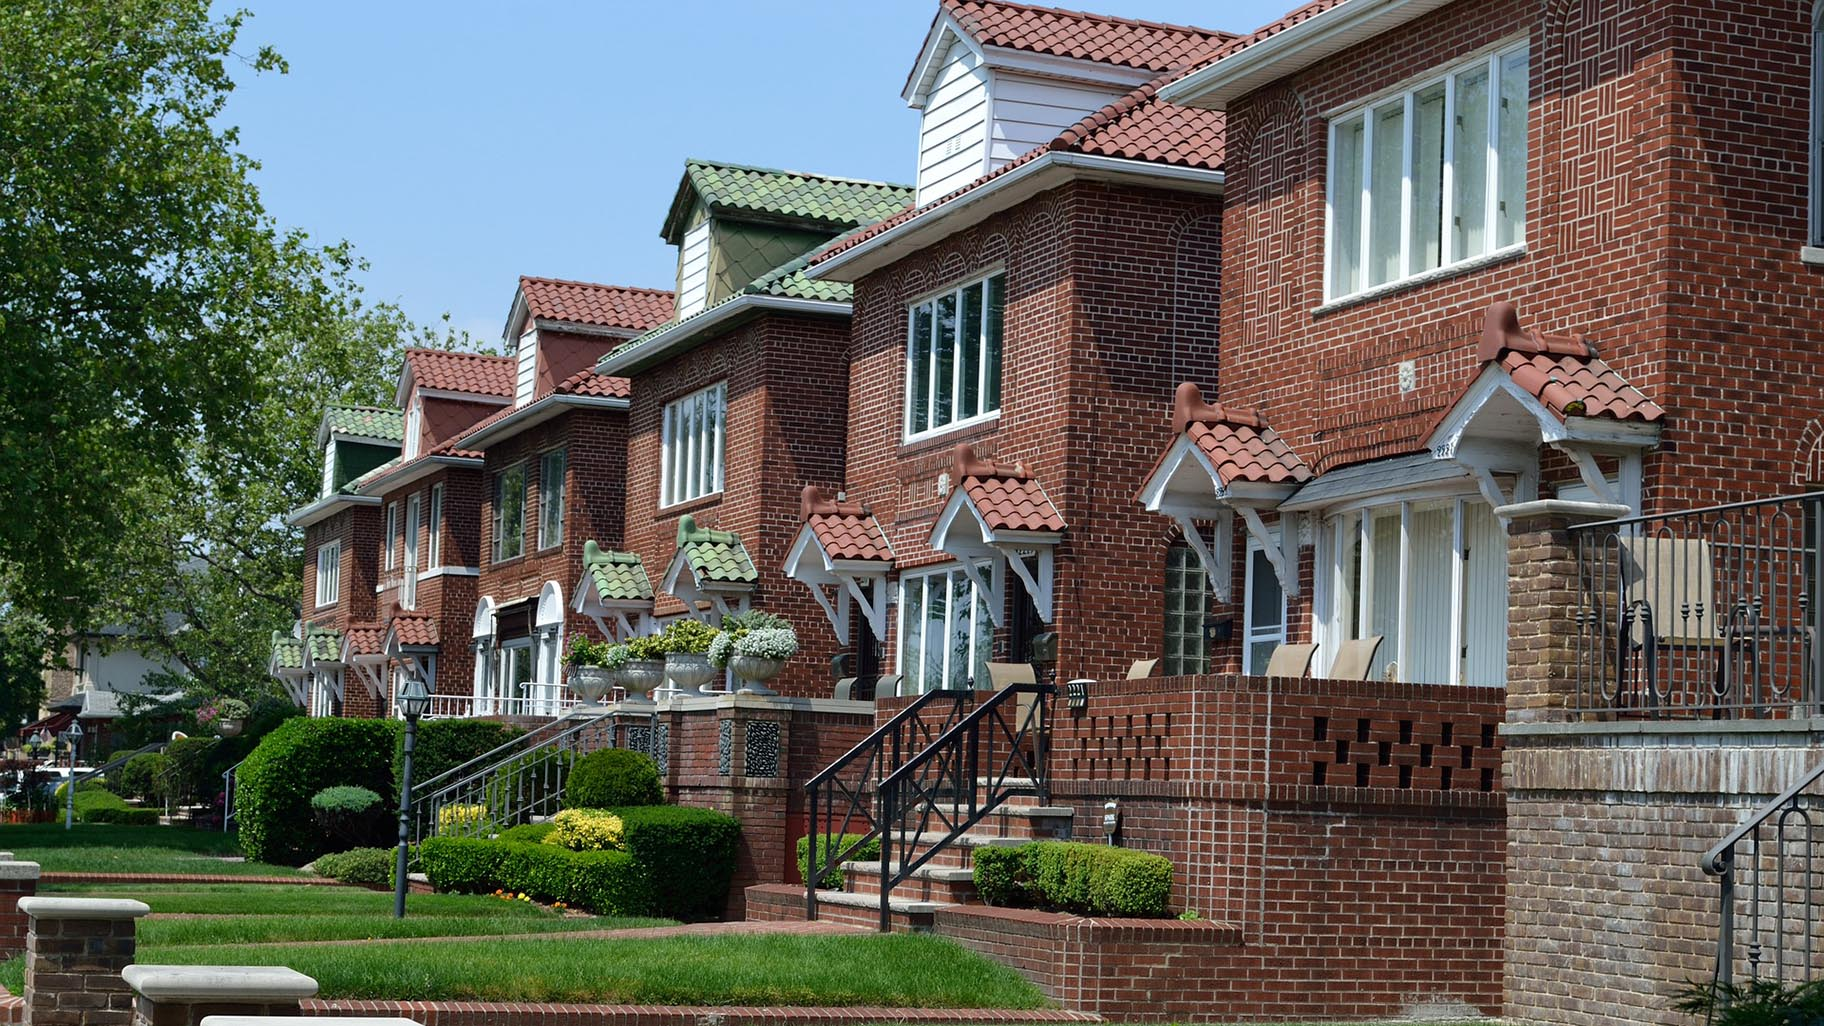 Chicago Fair Housing Advocates Criticize Rollback in Regulations